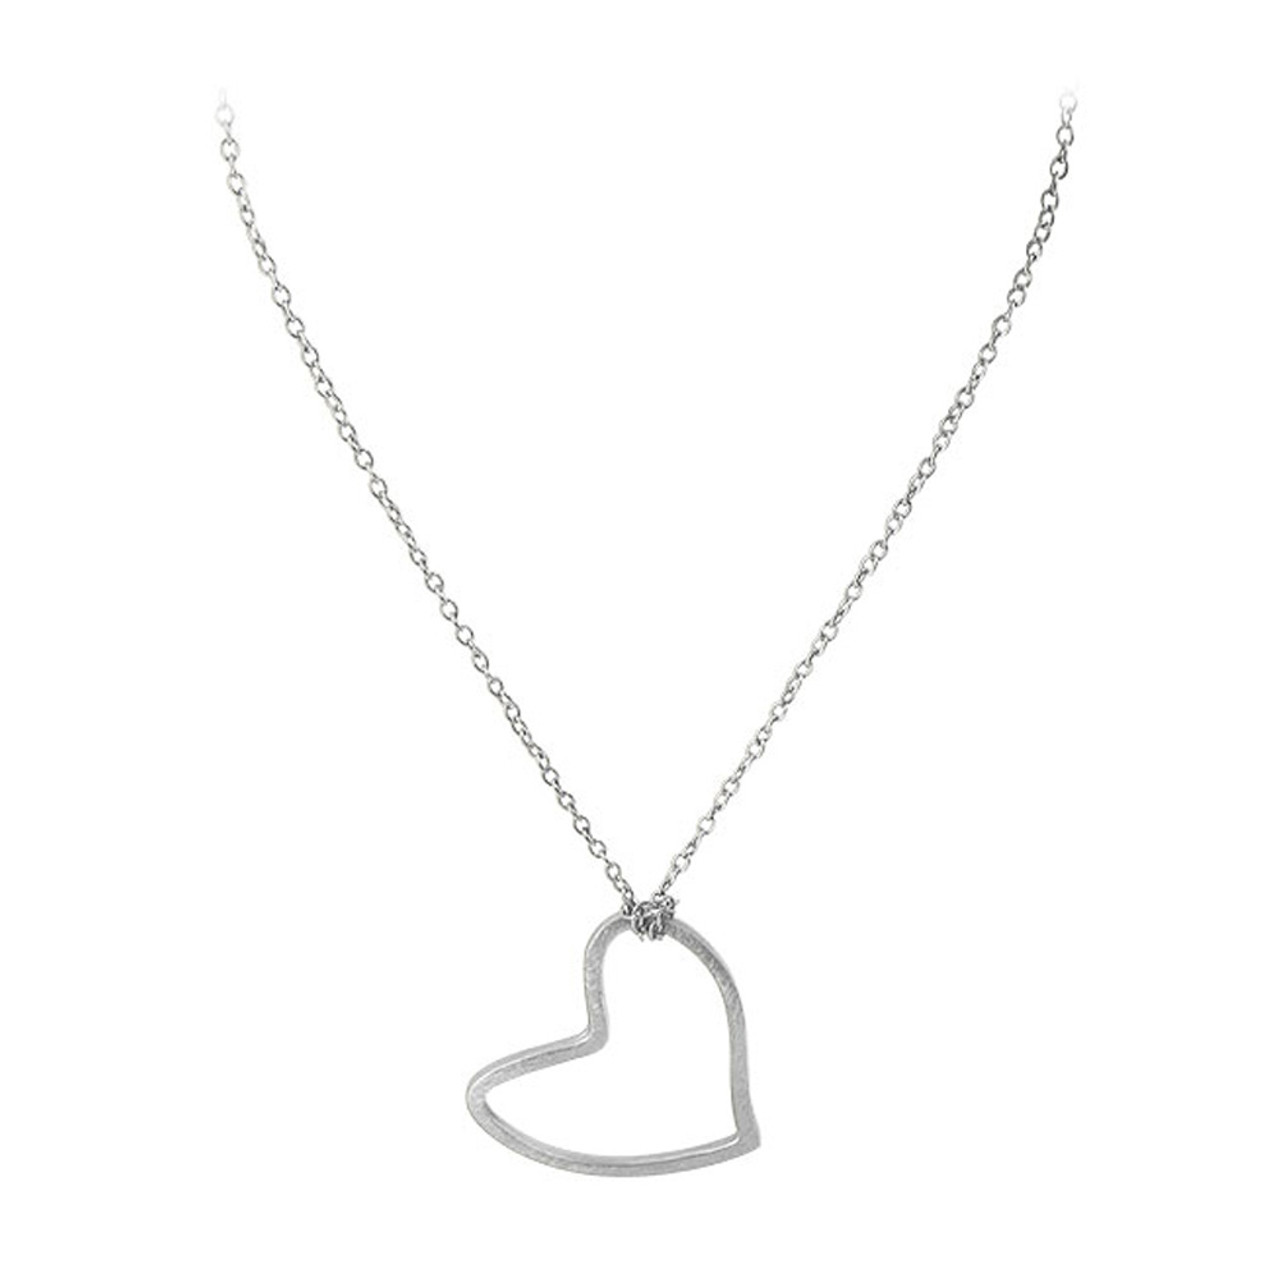 Silver Plated Heart Shape Pendant Adjustable Necklace